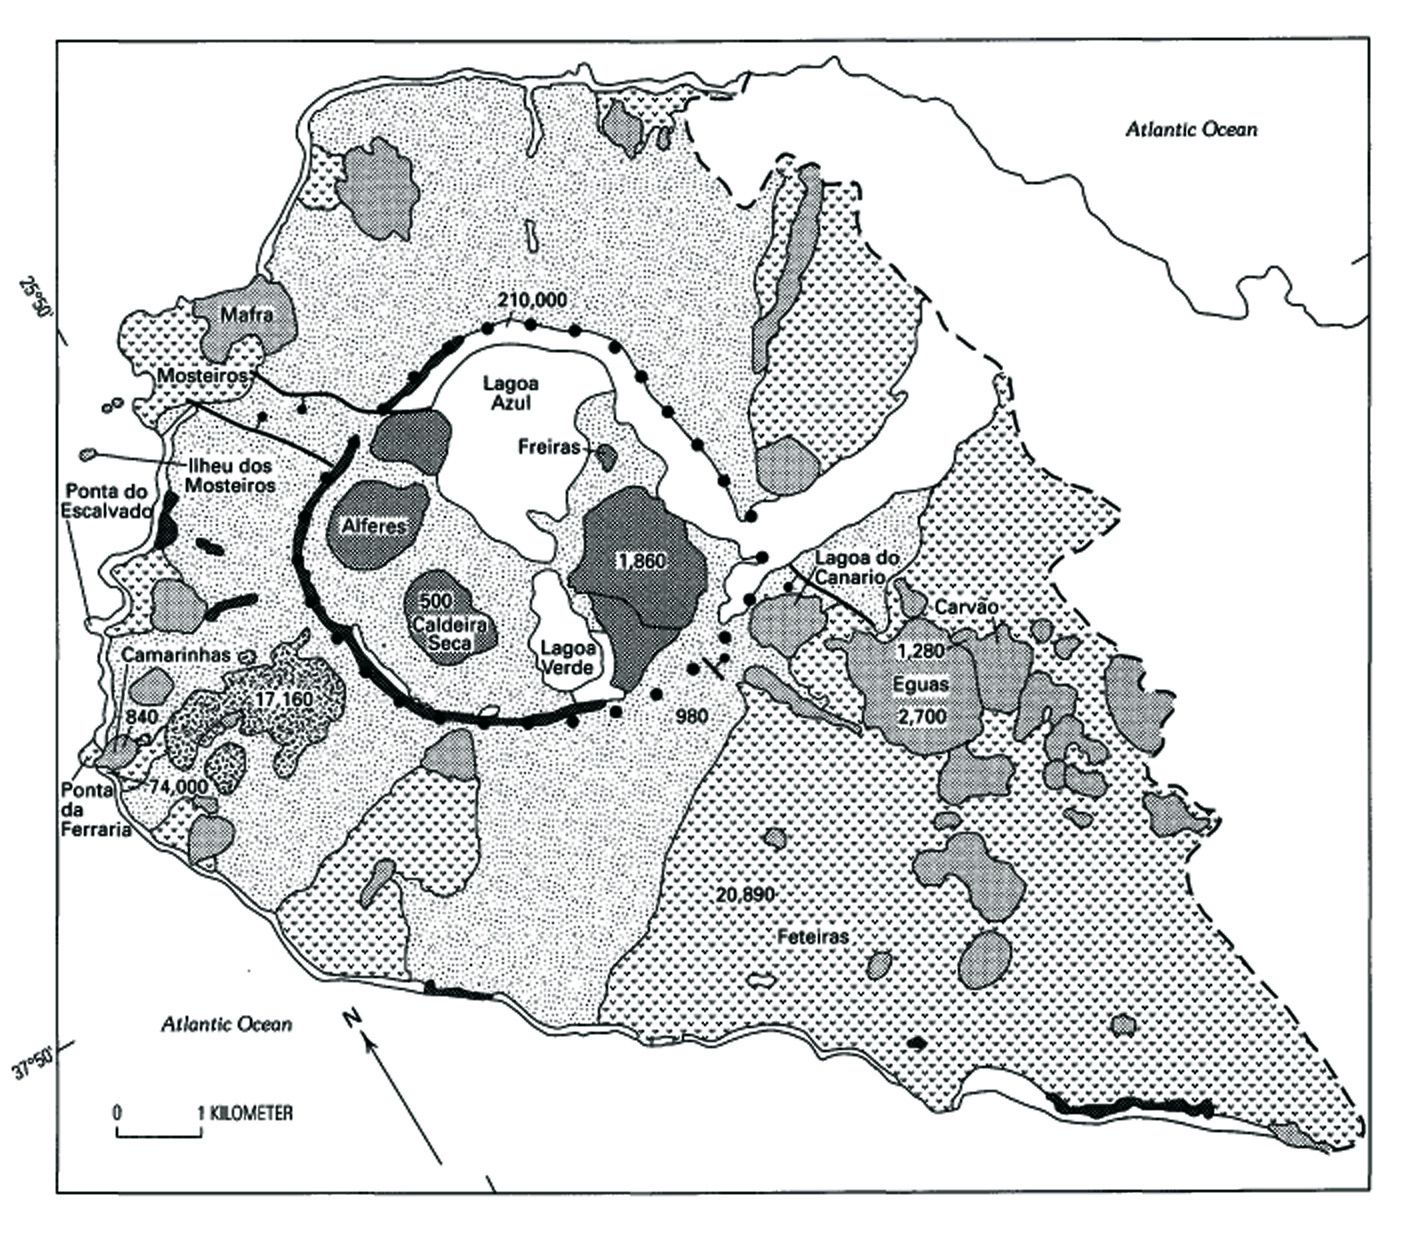 São Miguel / Açores - Carte géologique du stratovolcan Sete Citades - doc. in Geology of Three Late Quaternary Stratovolcanoes on Sao Miguel, Azores – by R.Moore